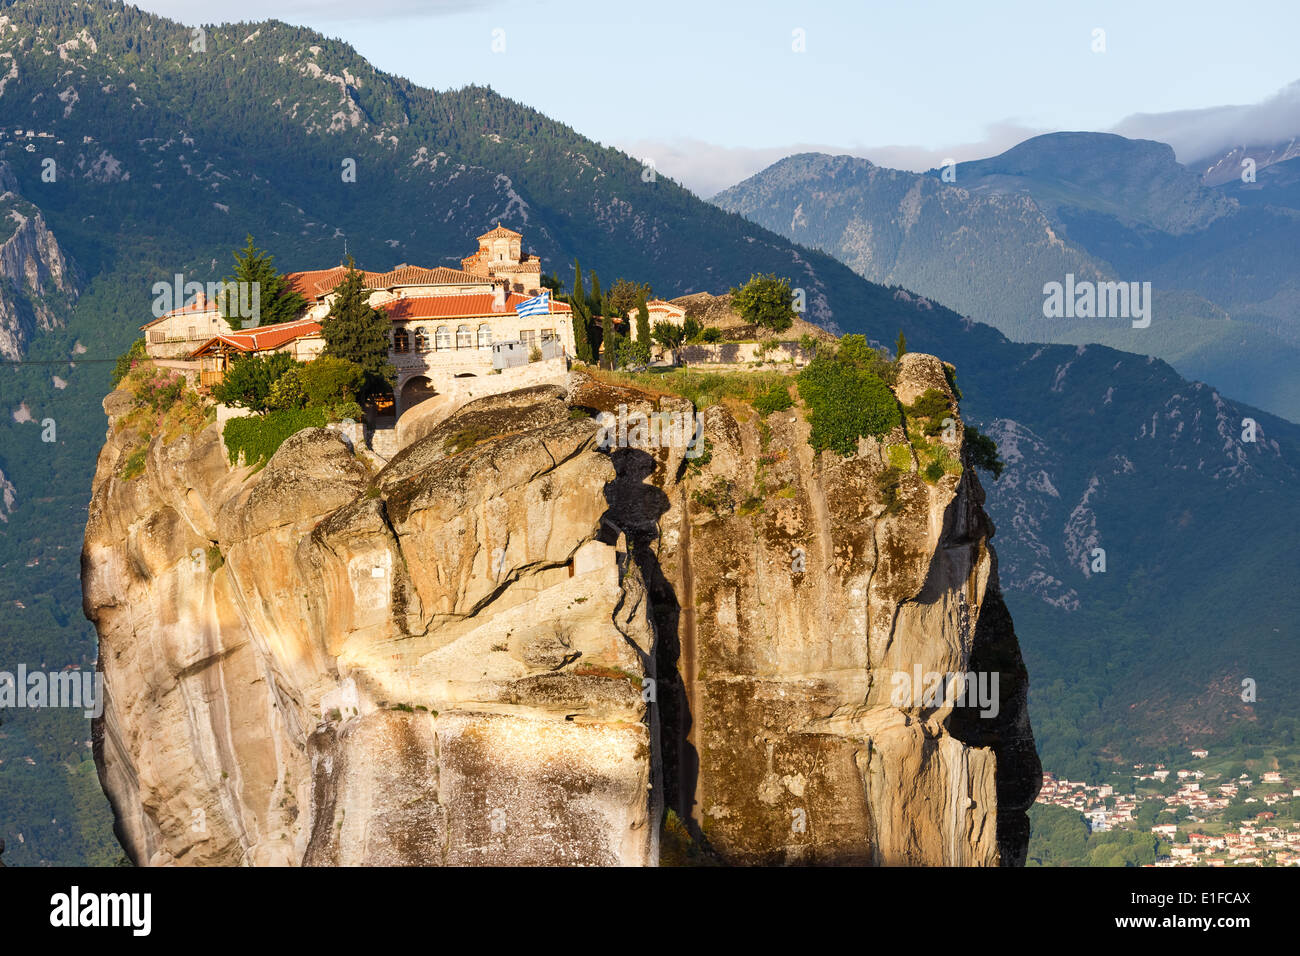 Holy Trinity Monastery in Meteora rocks, meaning